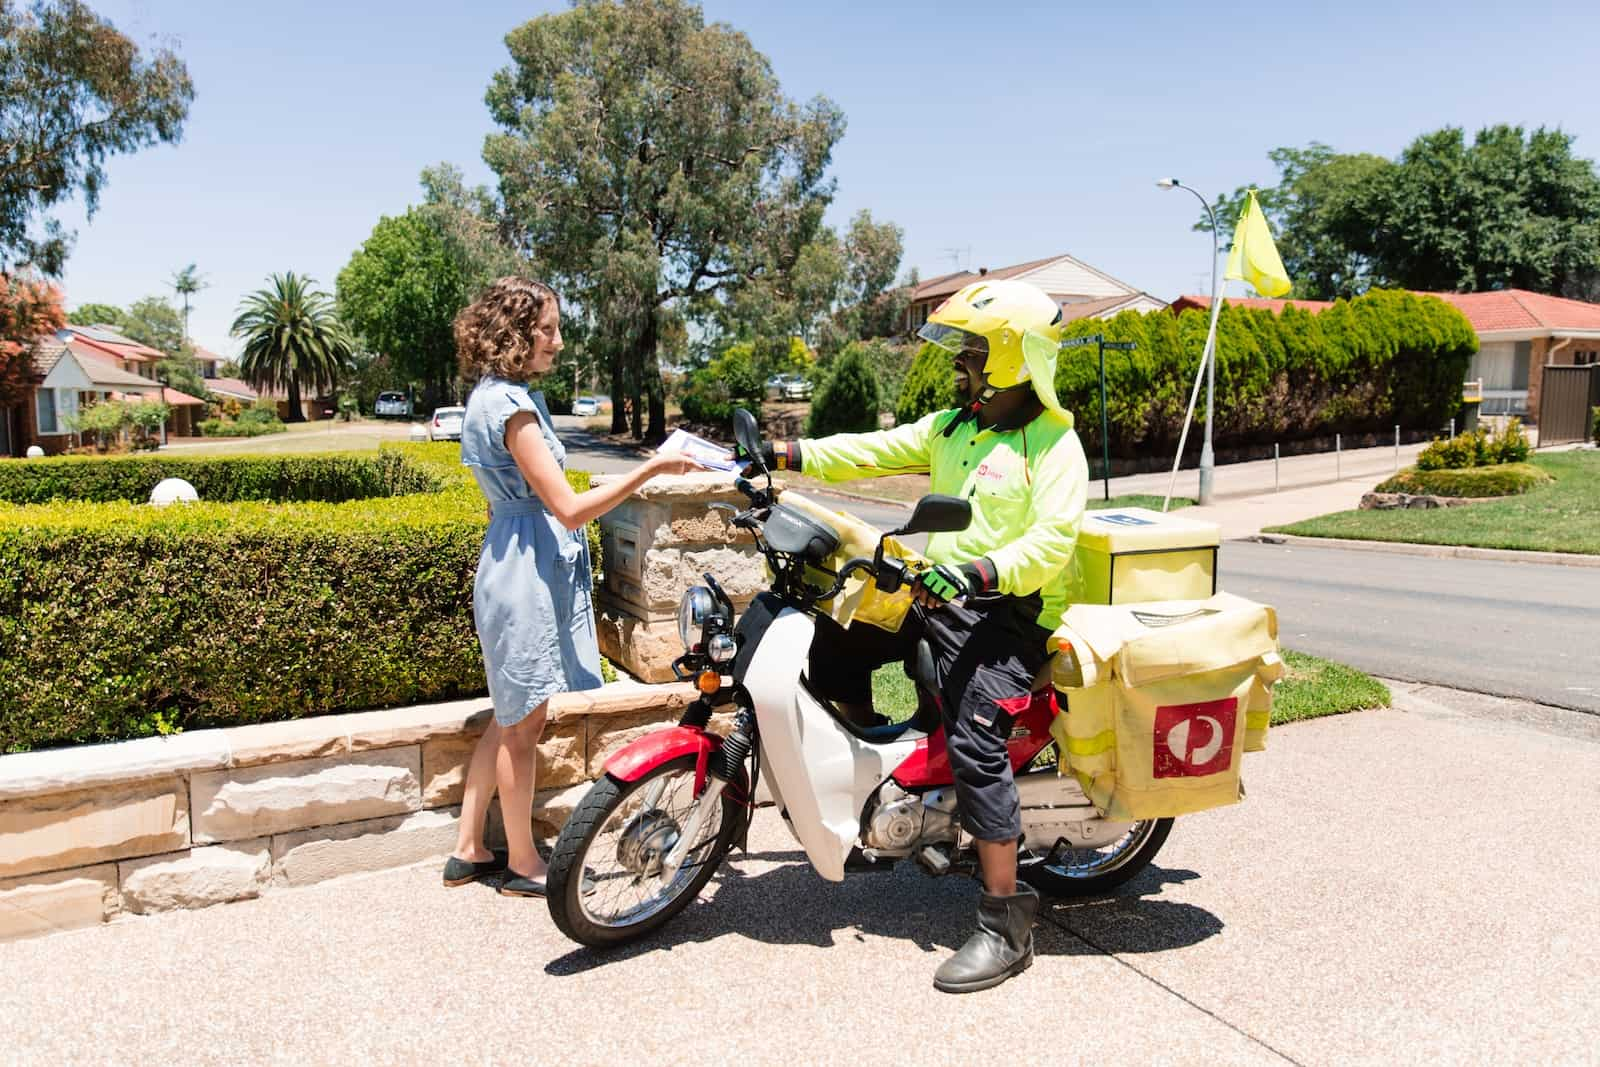 A mailman on a motorcycle hands a letter to a woman.